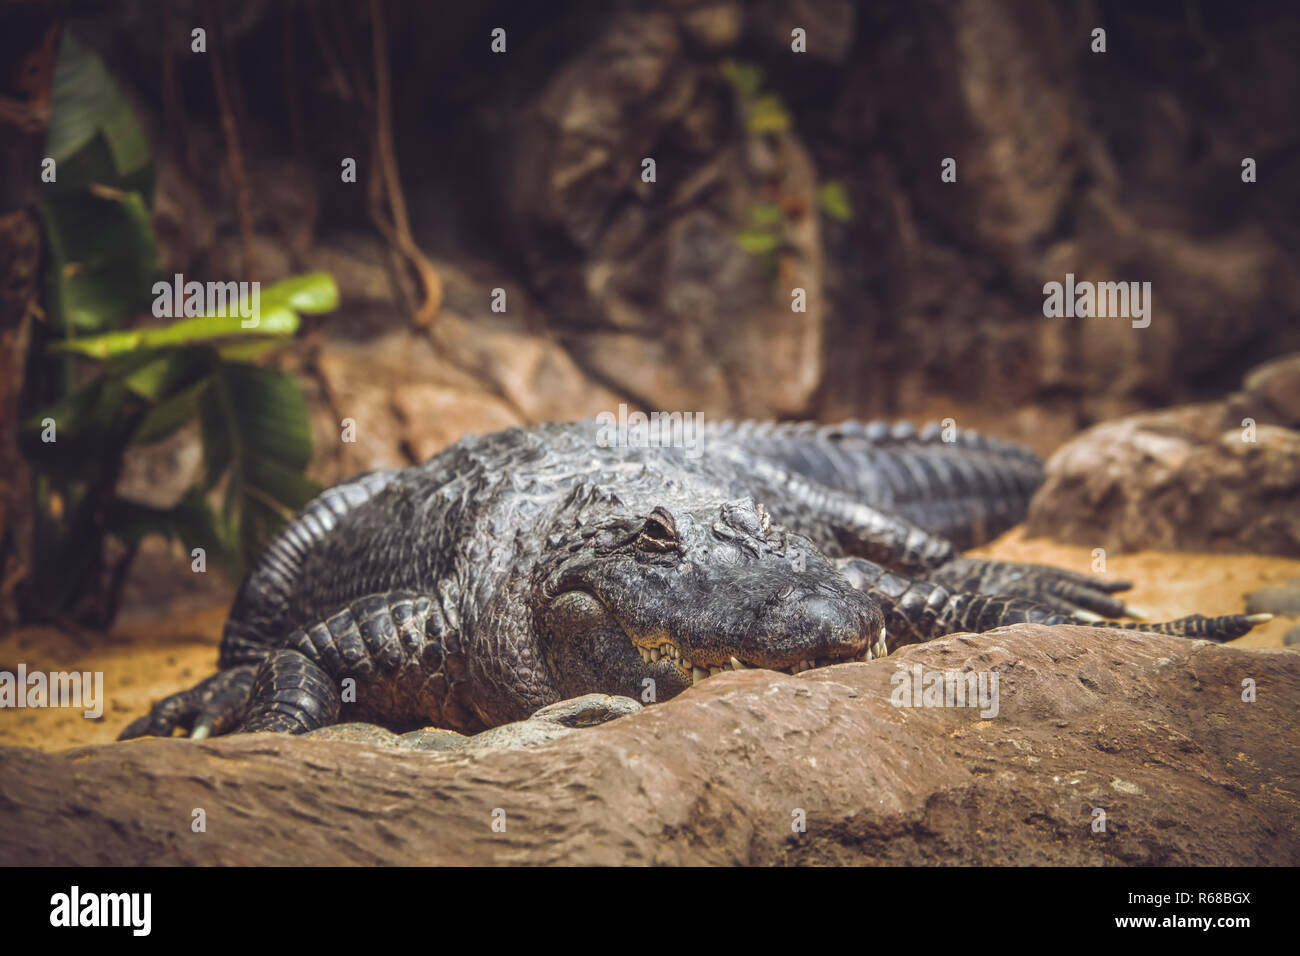 Alligator in the zoo - Stock Image